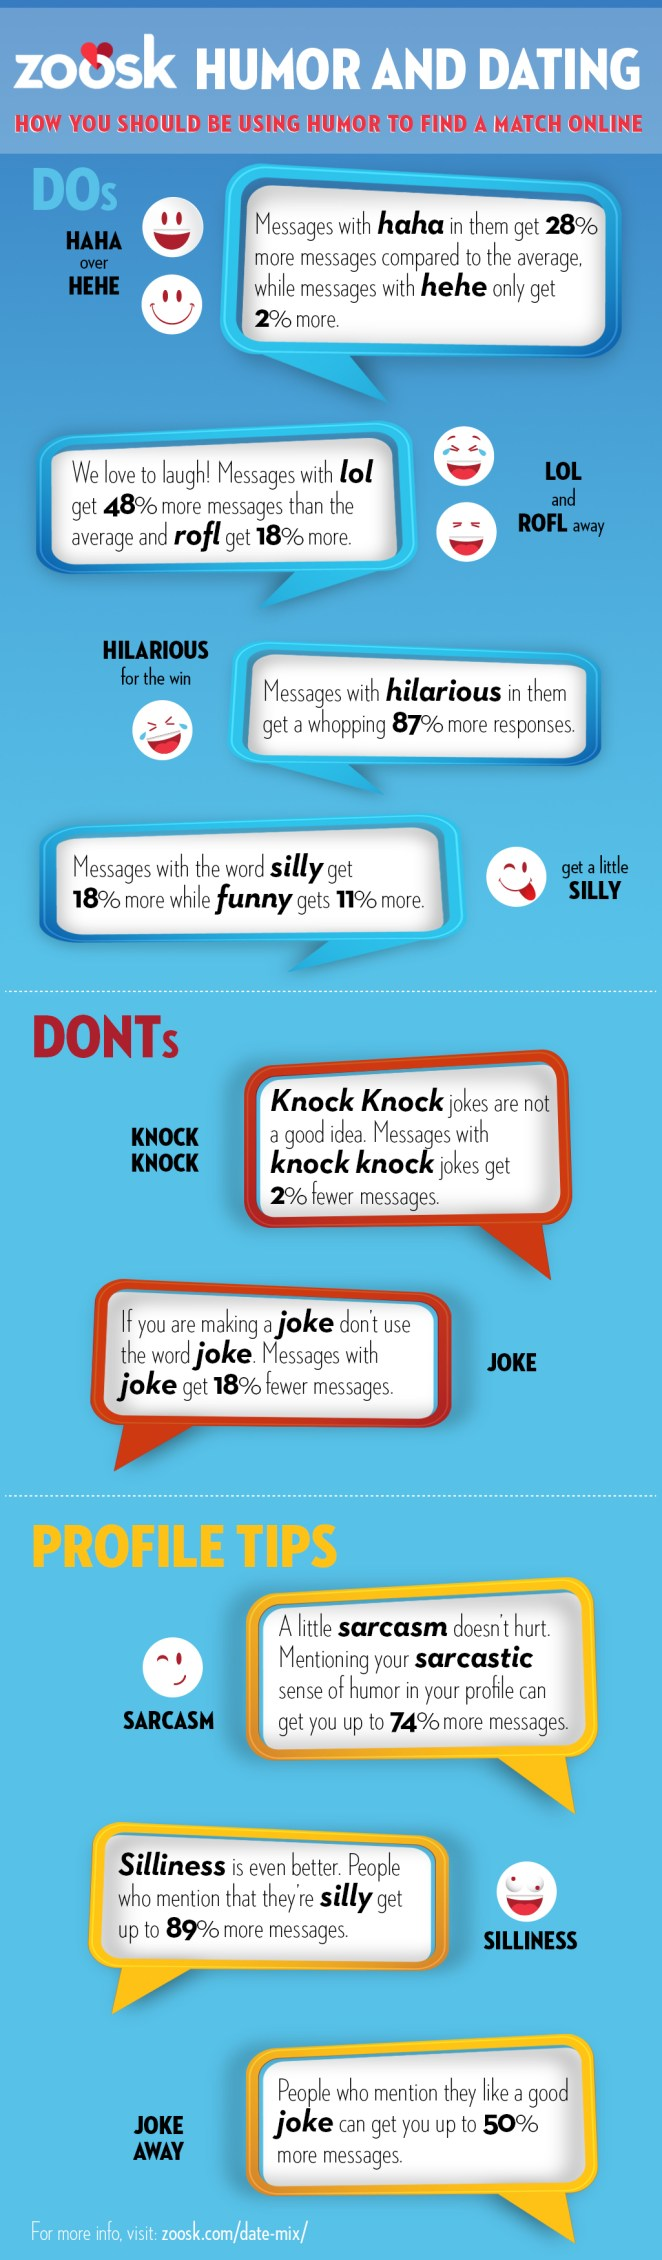 Humor and online dating infographic